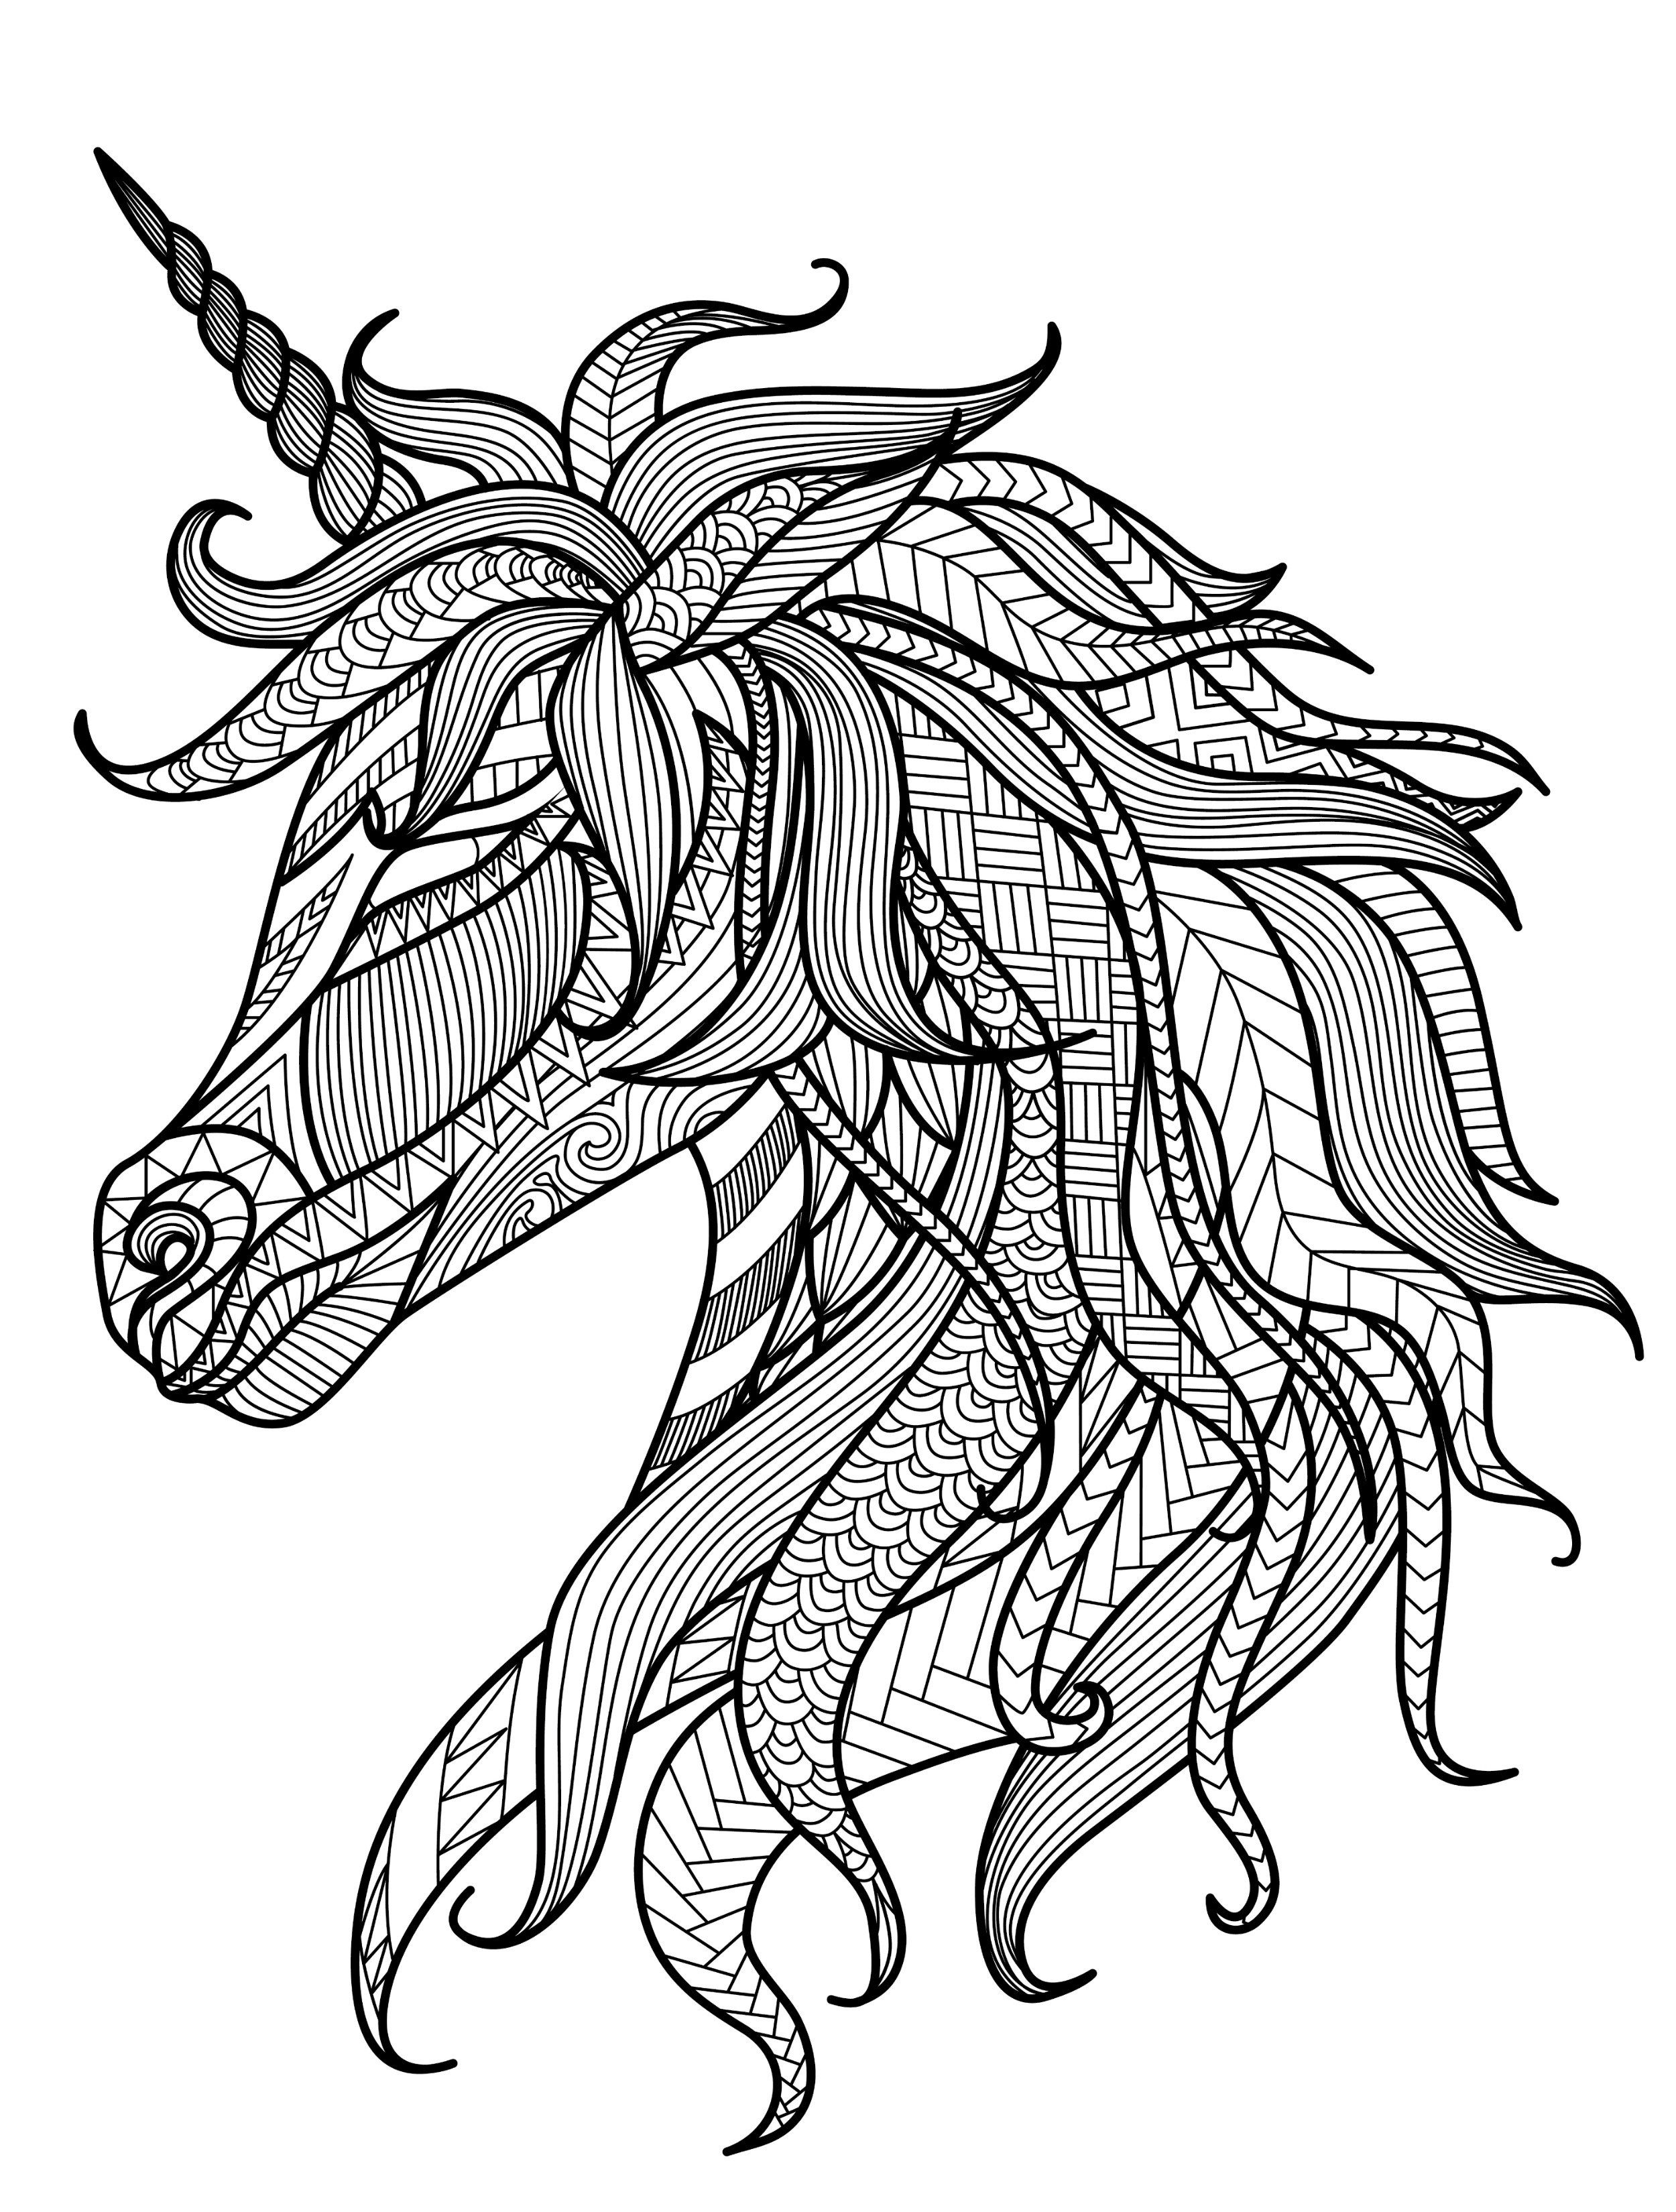 20 Gorgeous Free Printable Adult Coloring Pages | Printing ...